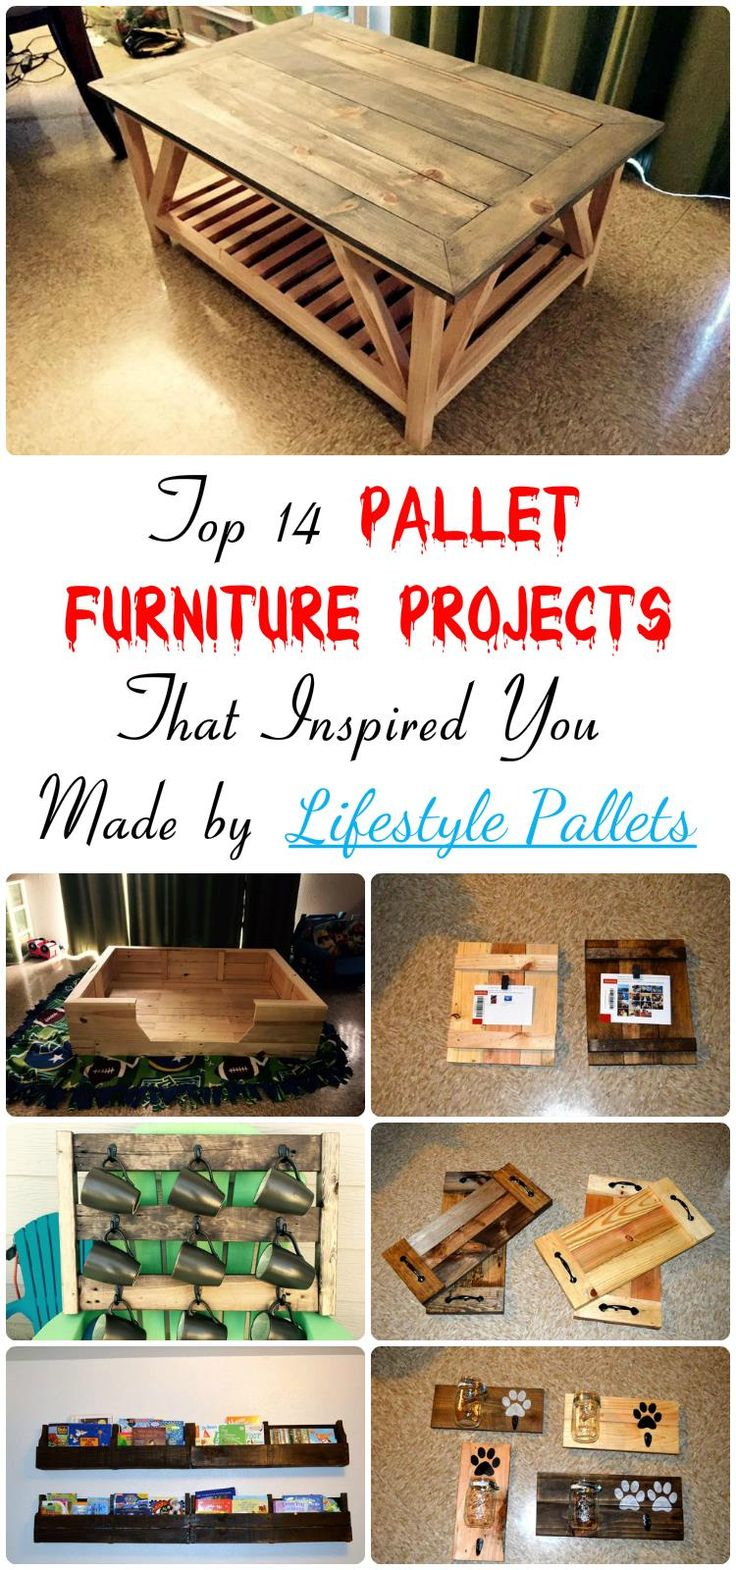 Top 14 Pallet Furniture Projects That Inspired You | 101 Pallet Ideas